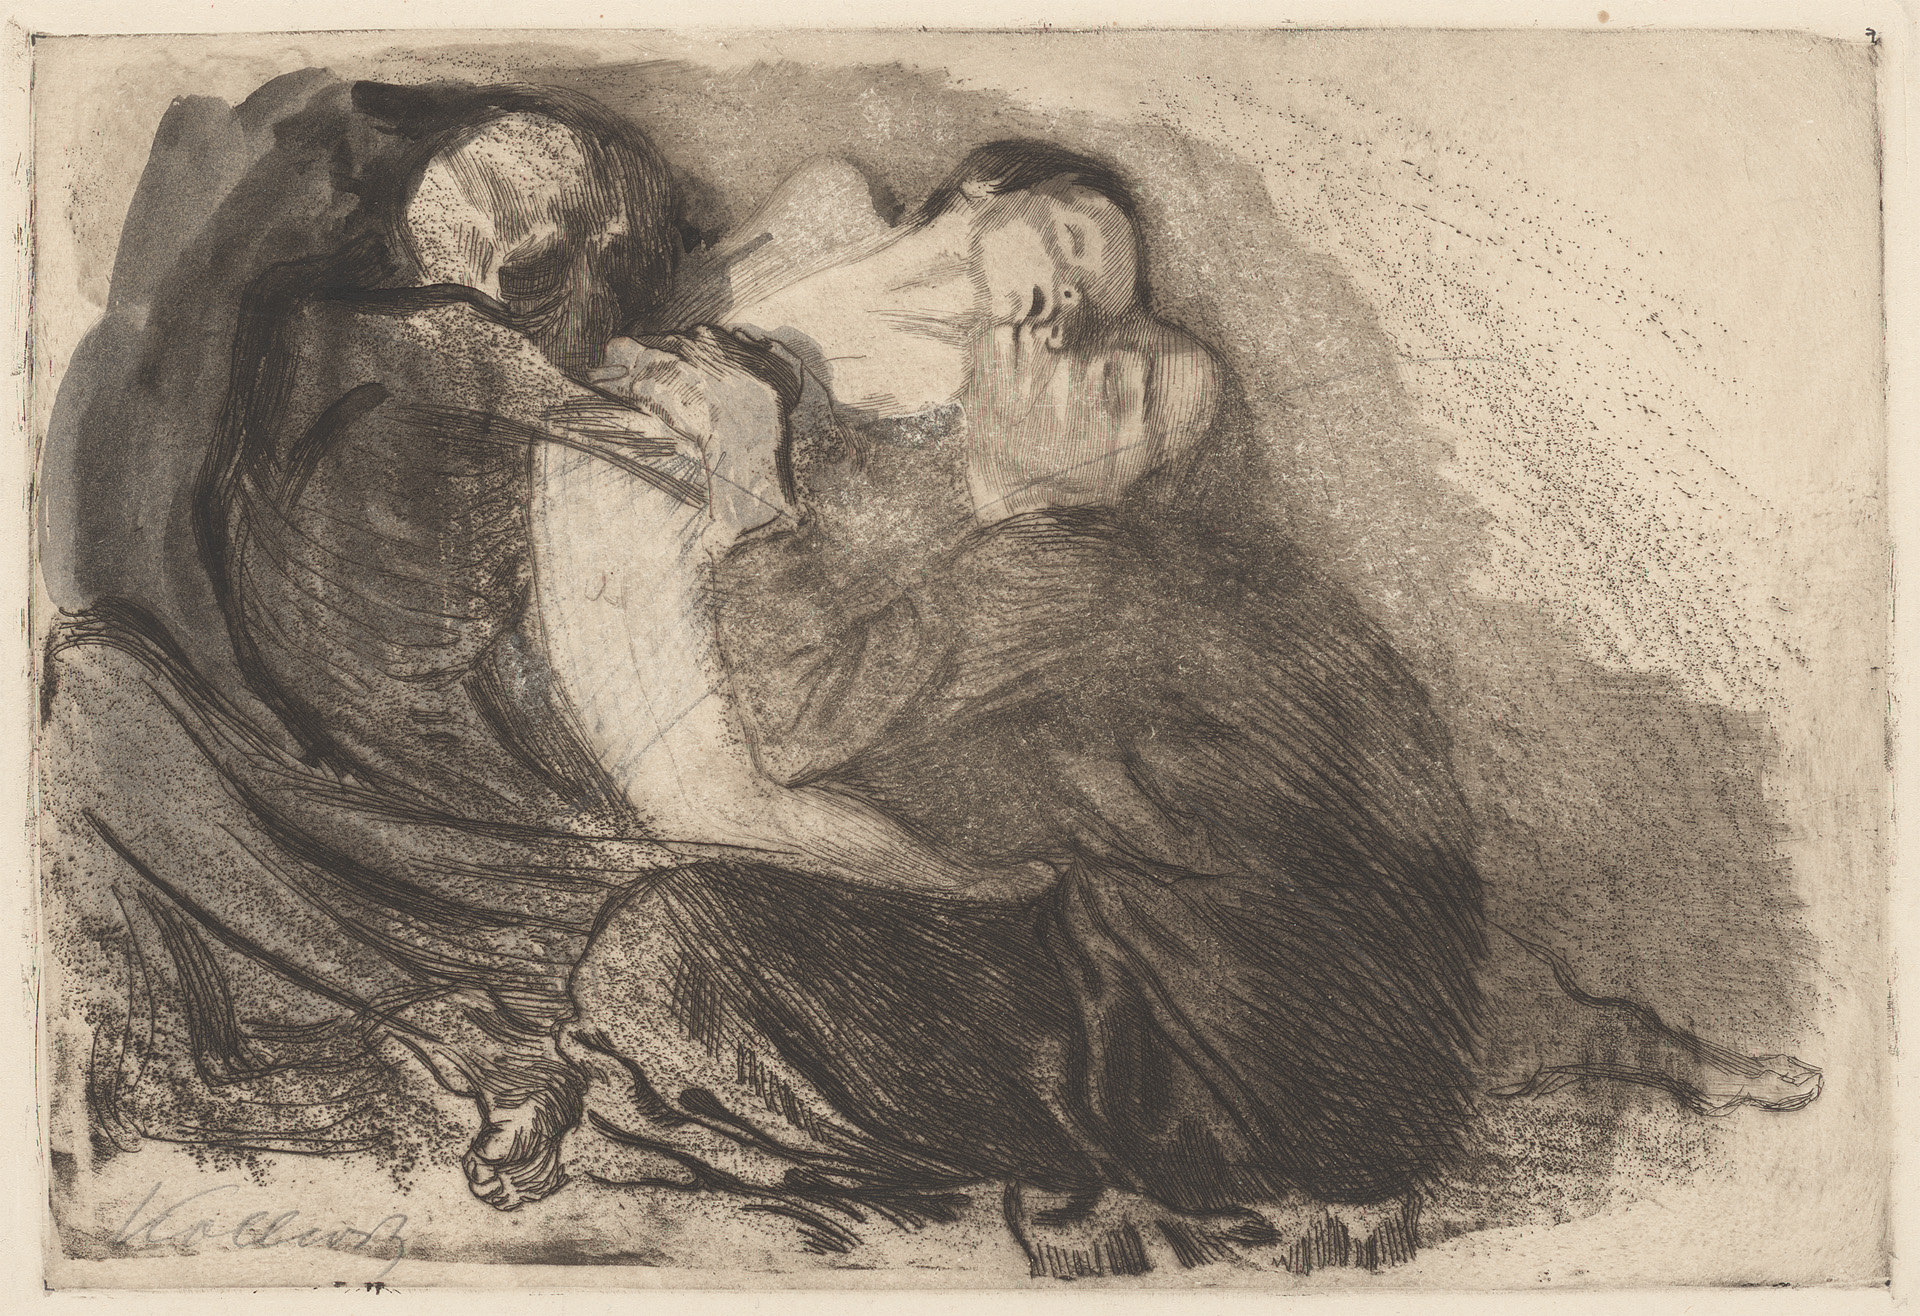 Käthe Kollwitz, Death snatching a Sick Child from its Mother, rejected plate, 1911, line etching, drypoint and sandpaper, Kn 119 II, Cologne Kollwitz Collection © Käthe Kollwitz Museum Köln